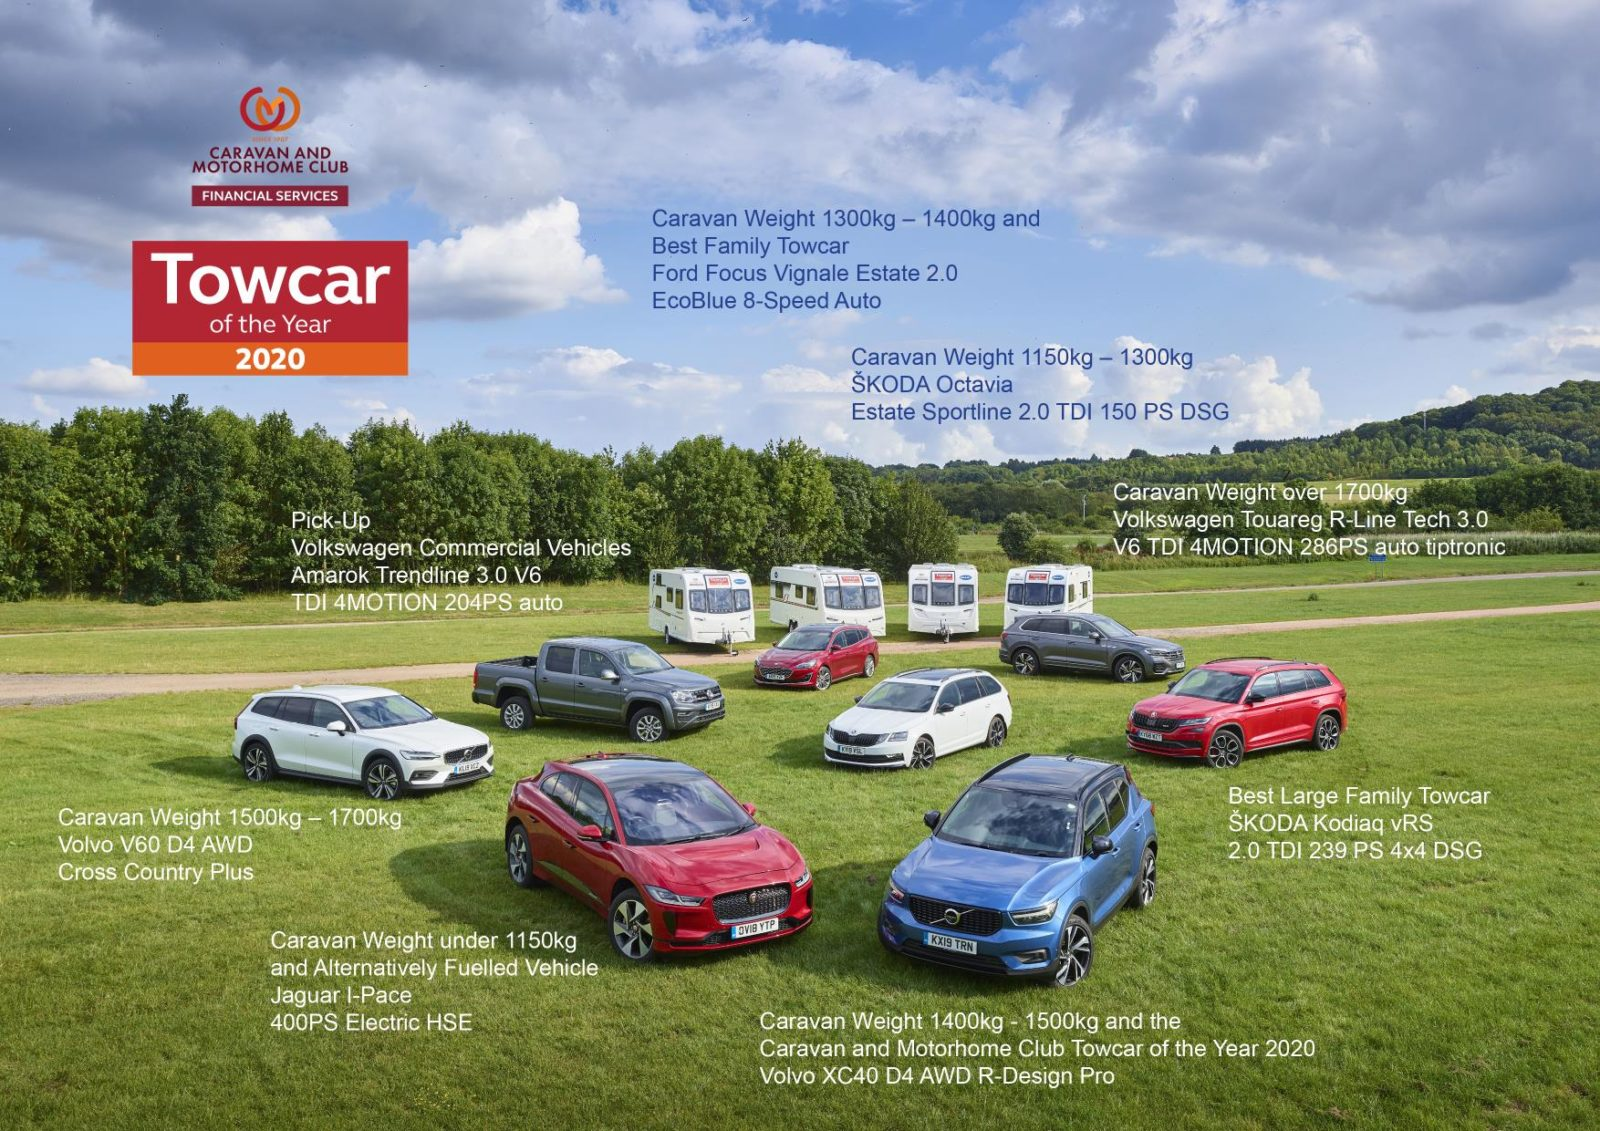 The Clever Swedes Top The List Of Tow Cars For The Caravan Motorhome Club Tow Car Of The Year 2020 Engineer Insurance Aftercare